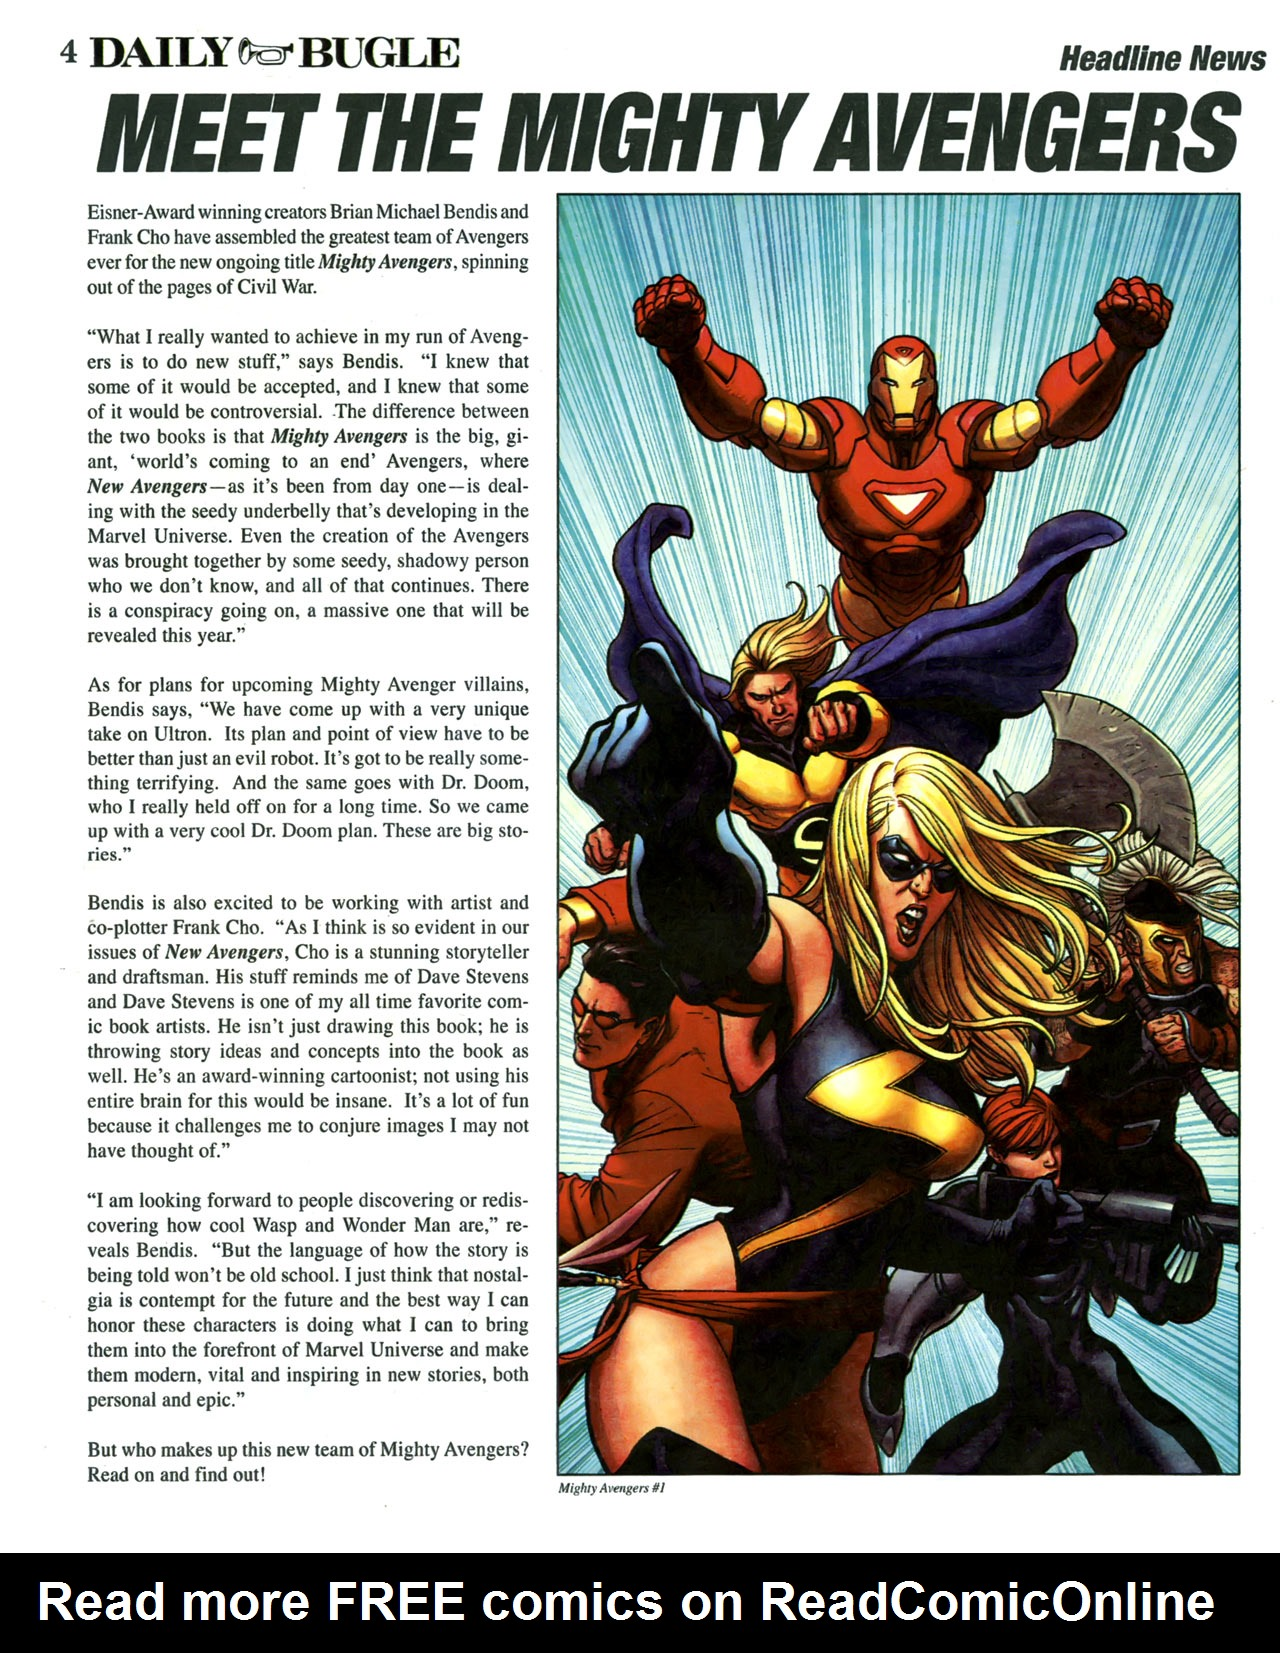 Read online Daily Bugle (2006) comic -  Issue #6 - 5